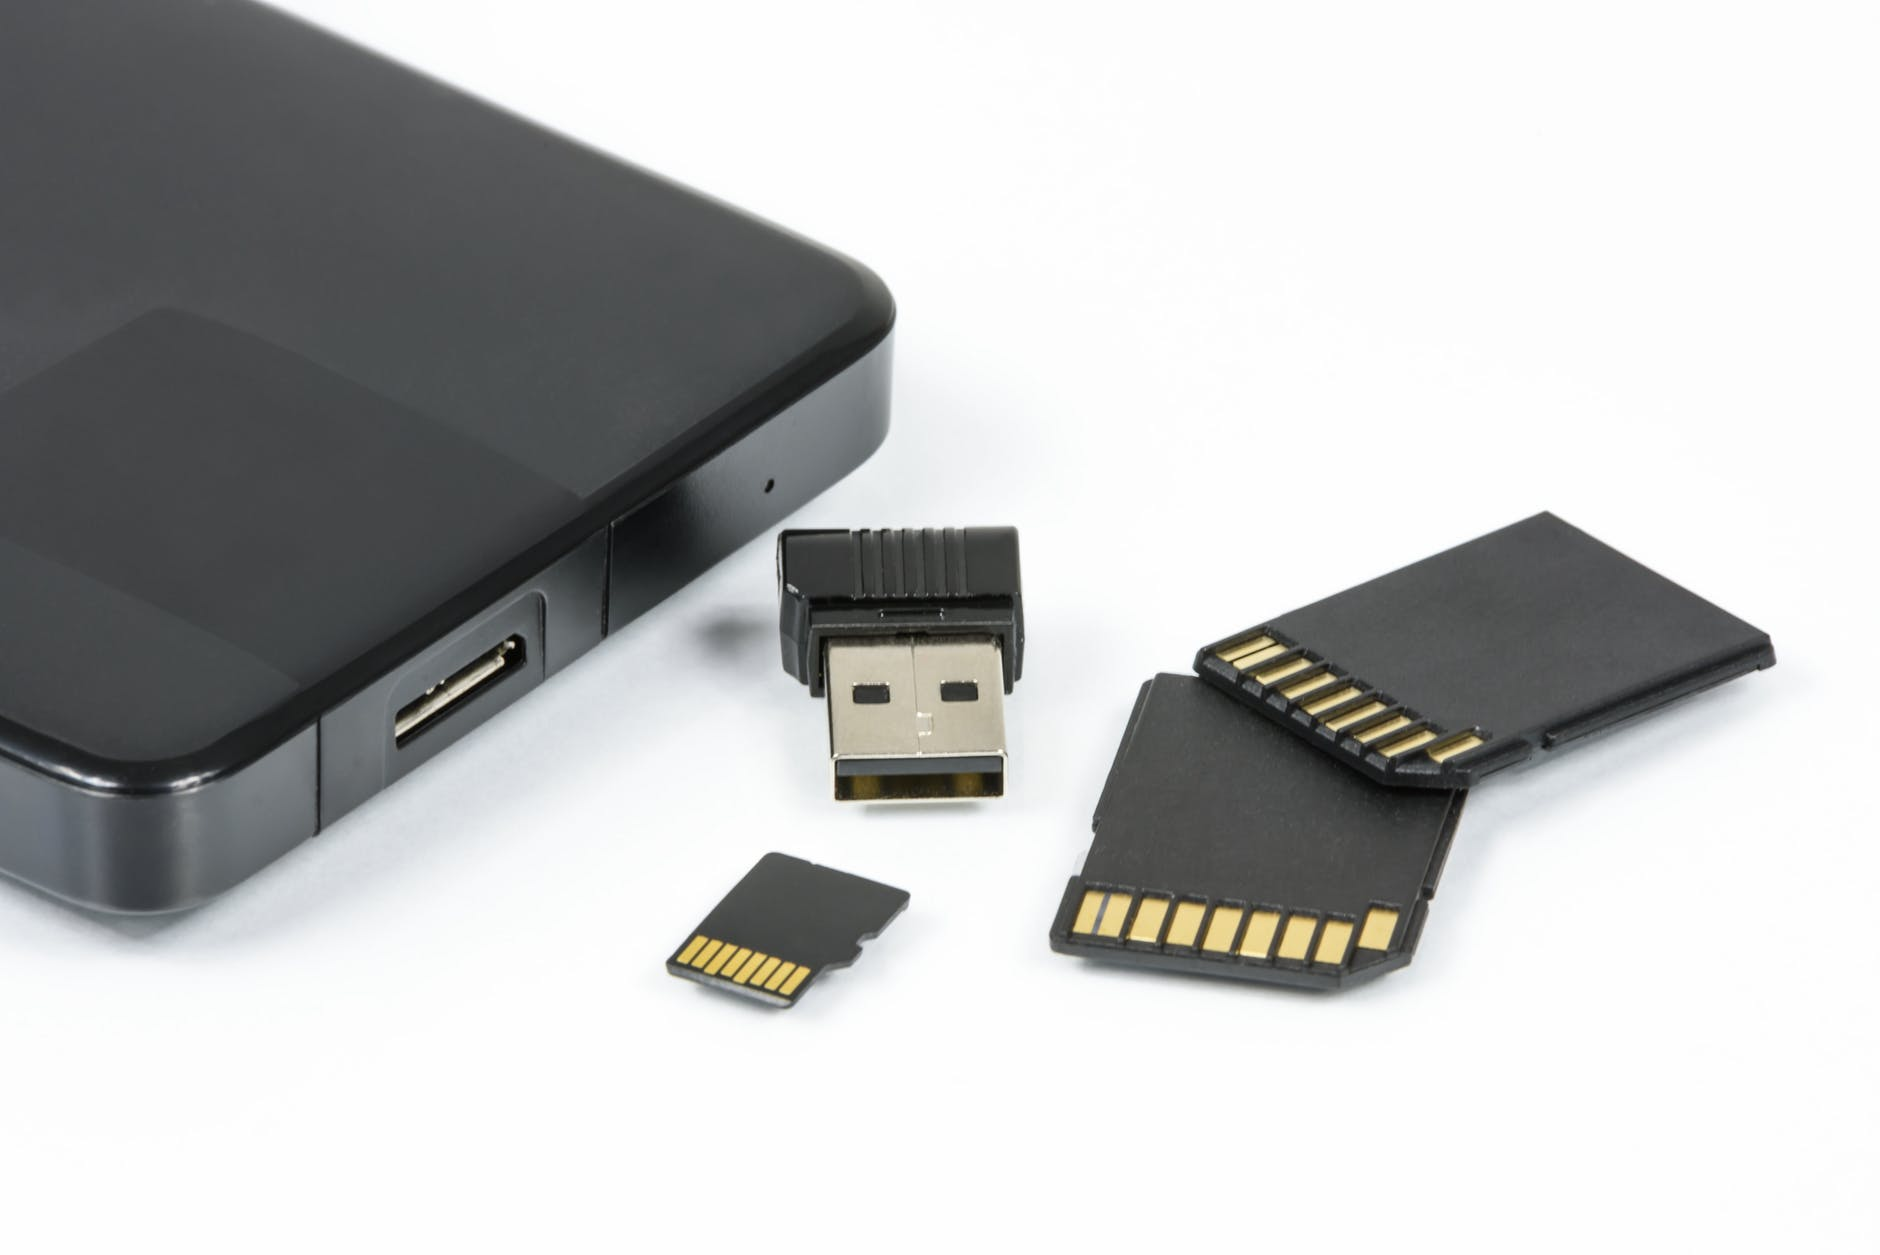 Black sd card near black android smartphone